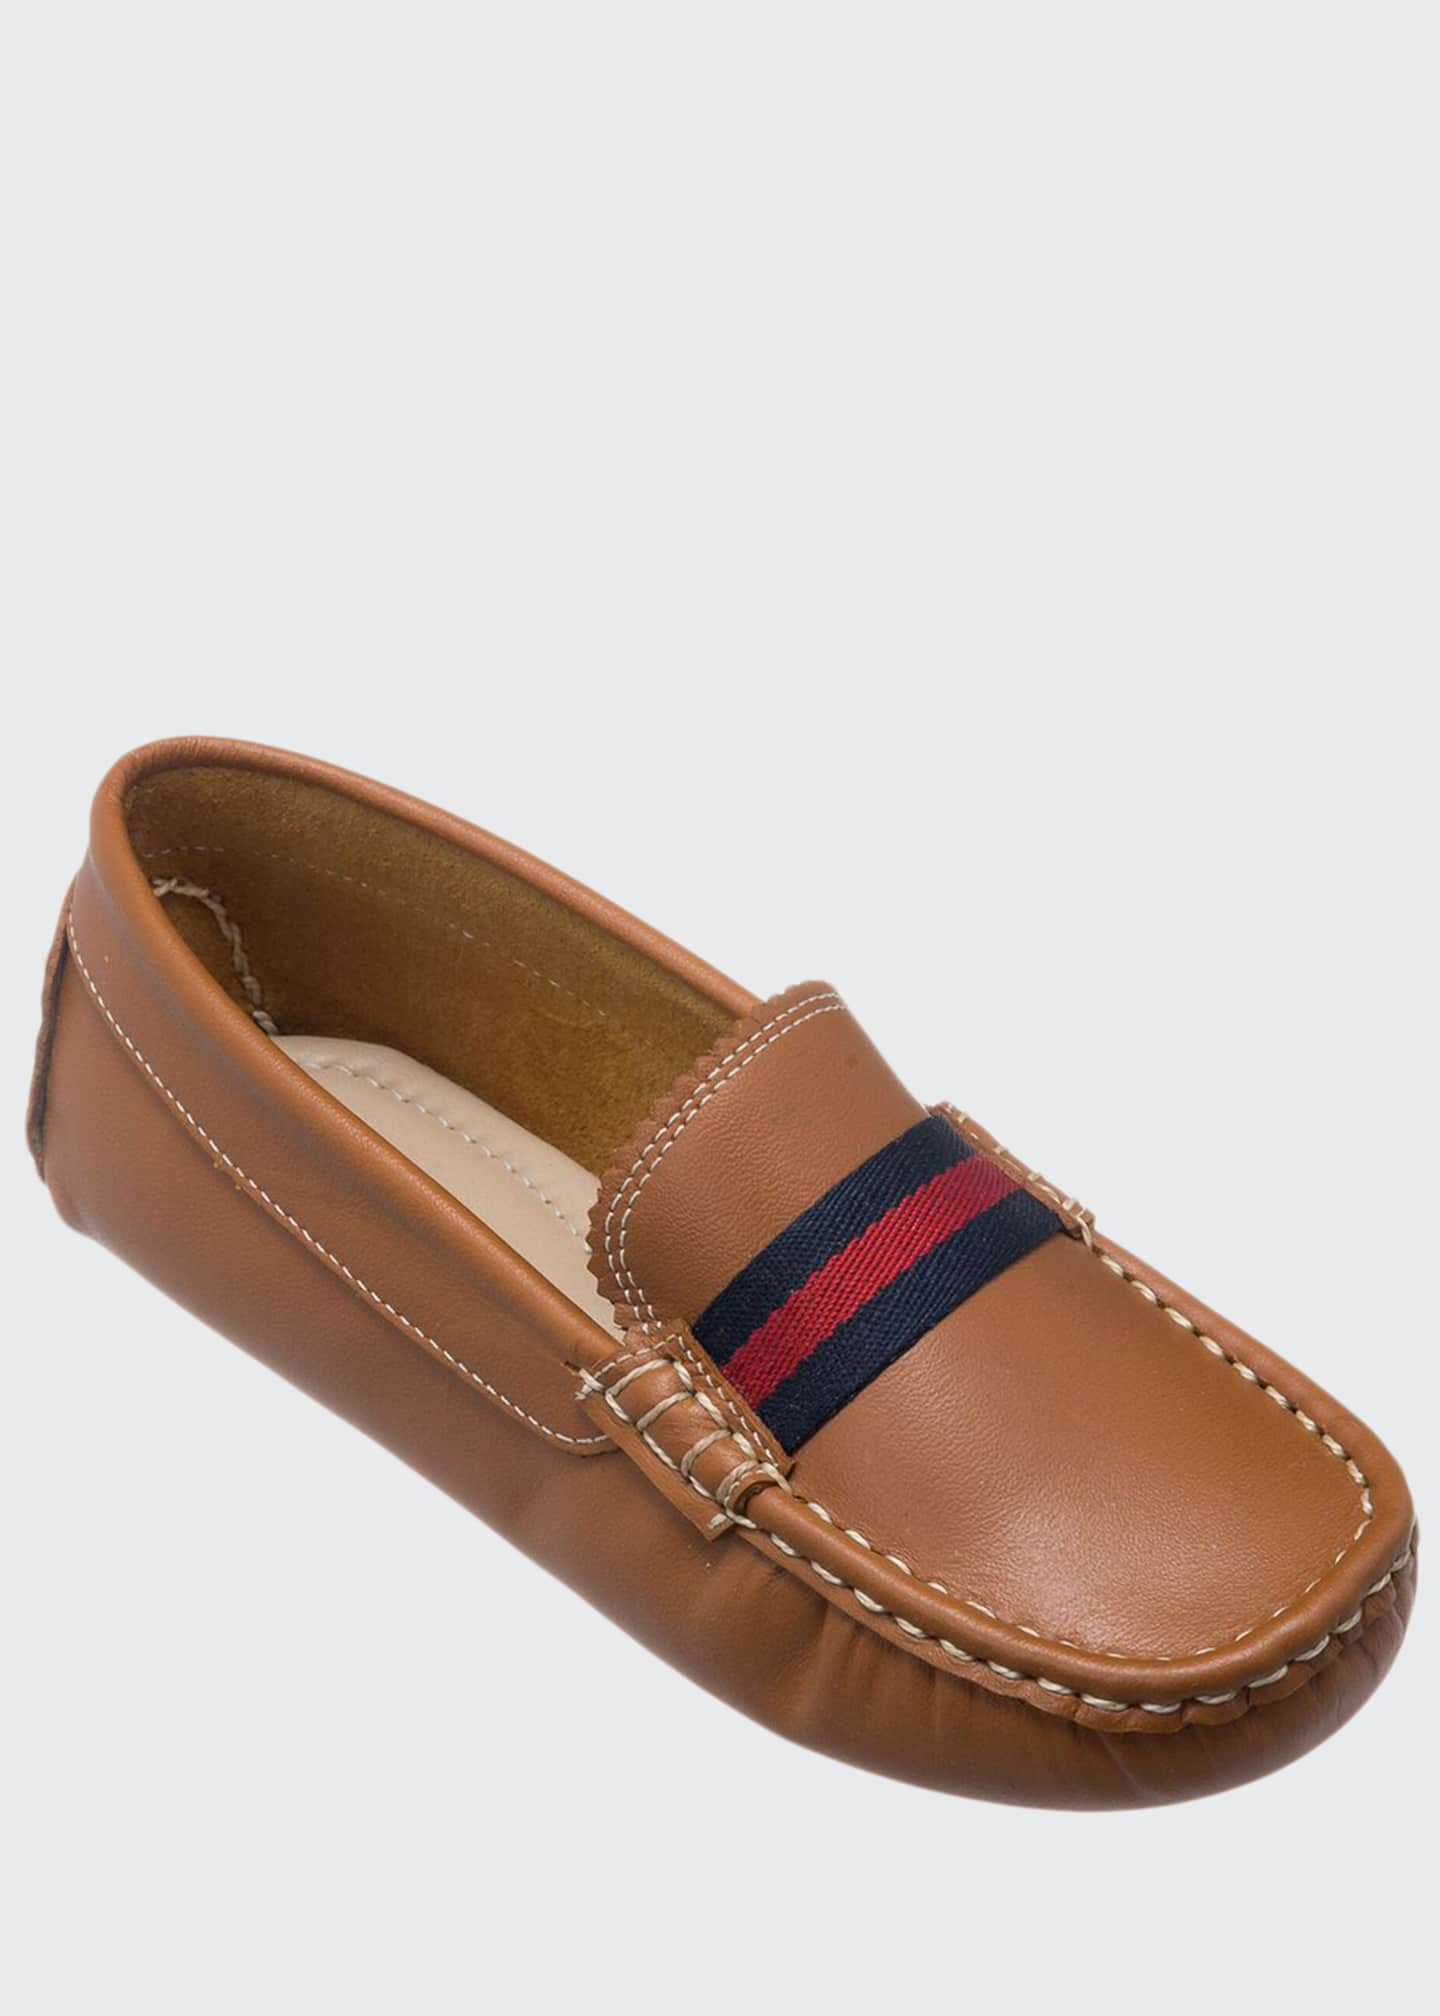 Elephantito Leather Club Loafer, Toddler/Kids